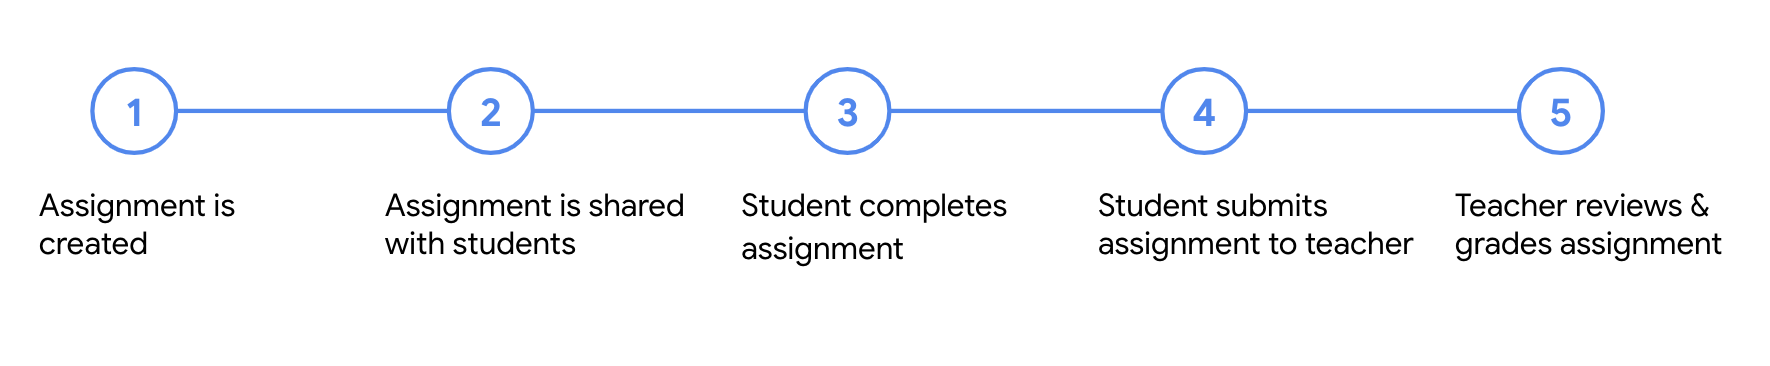 Diagram showing the five steps to an assignment